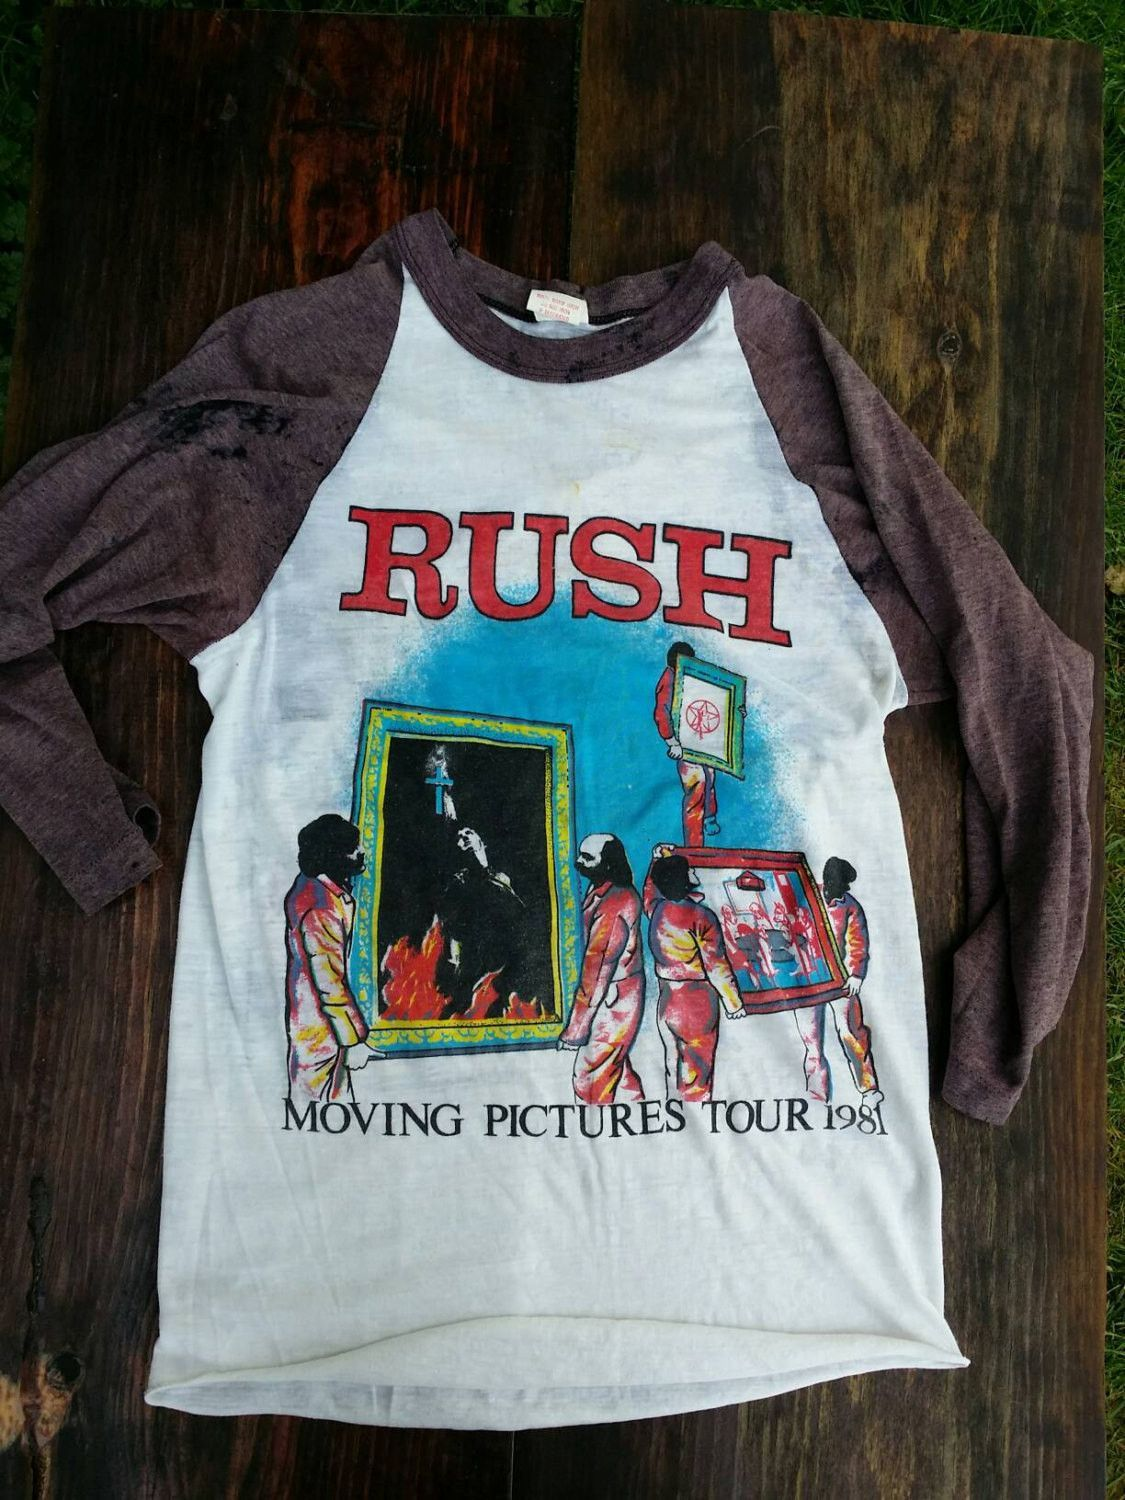 MOVING PICTURES TOUR 1981 T SHIRT ROCK RUSH OFFICIAL LICENSED